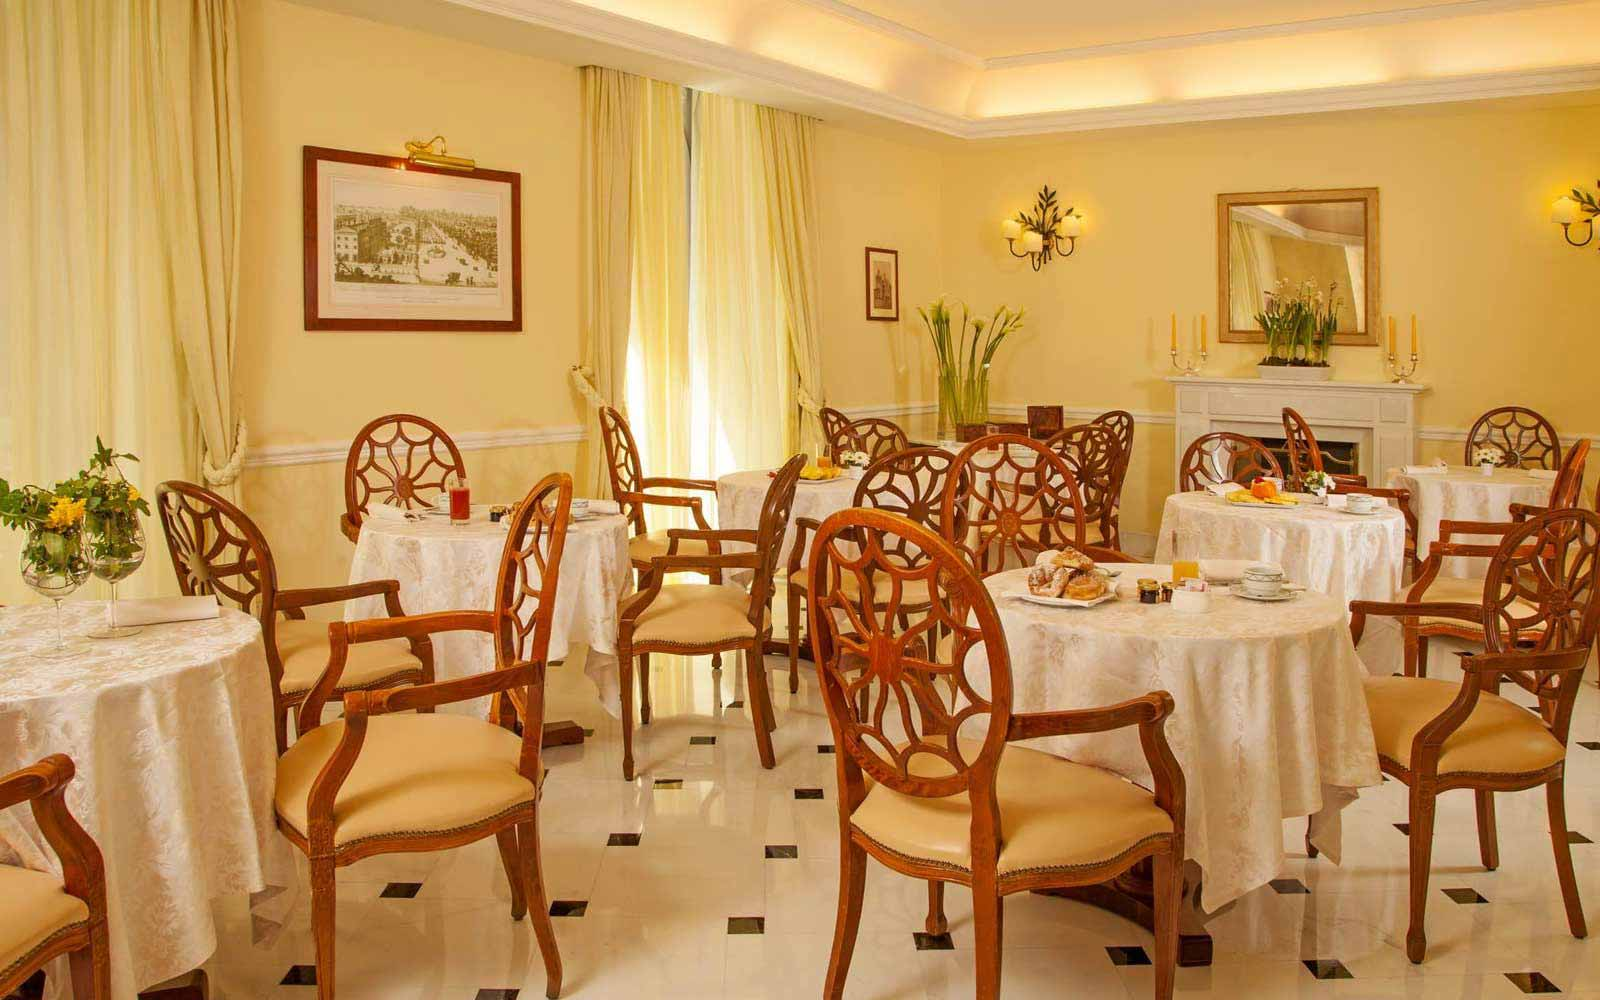 Dinning room at Hotel Ludovisi Palace